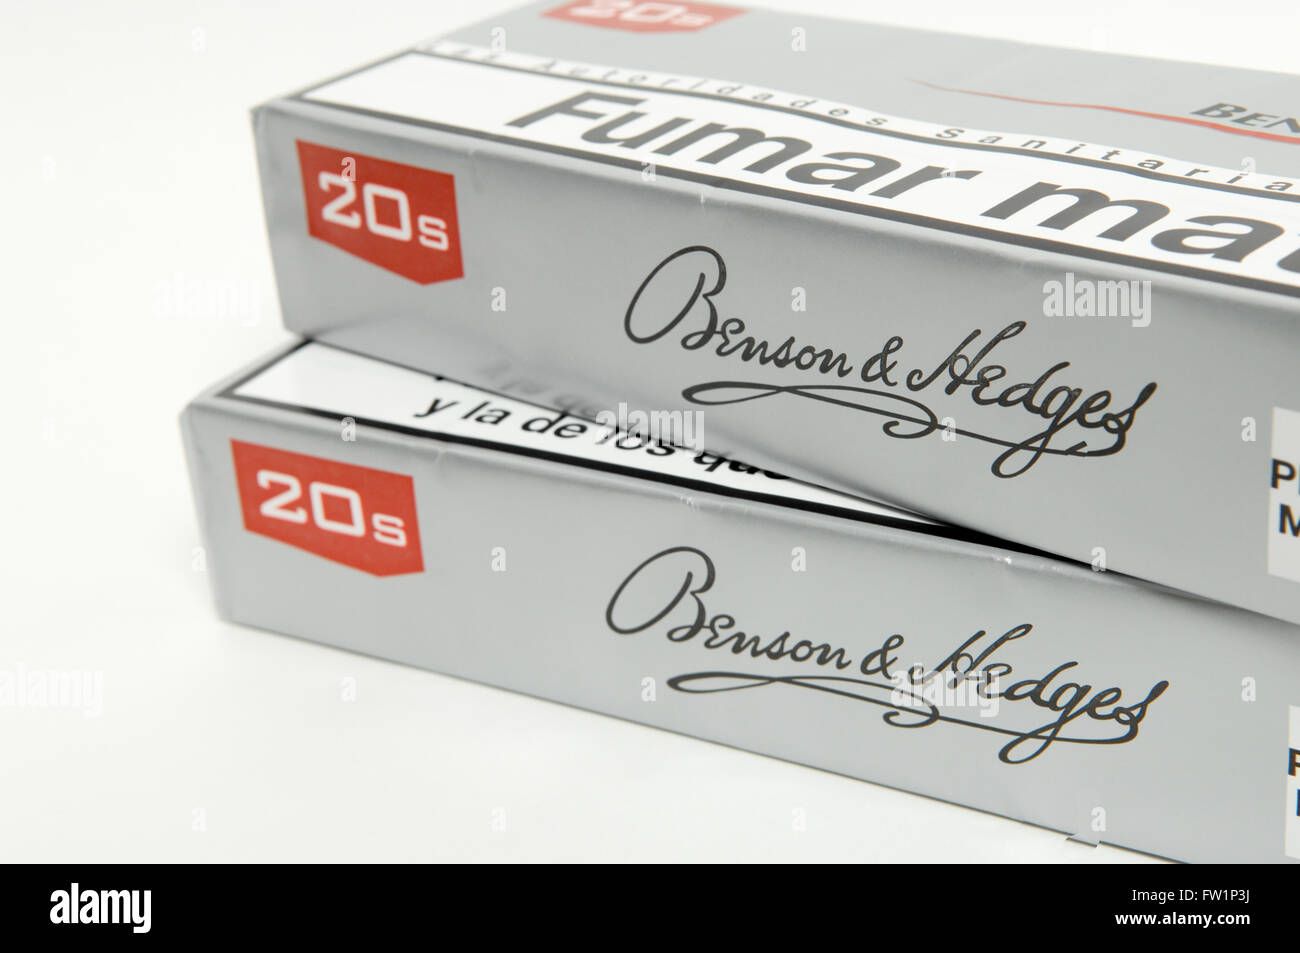 Cheapest cigarettes Dunhill cartons